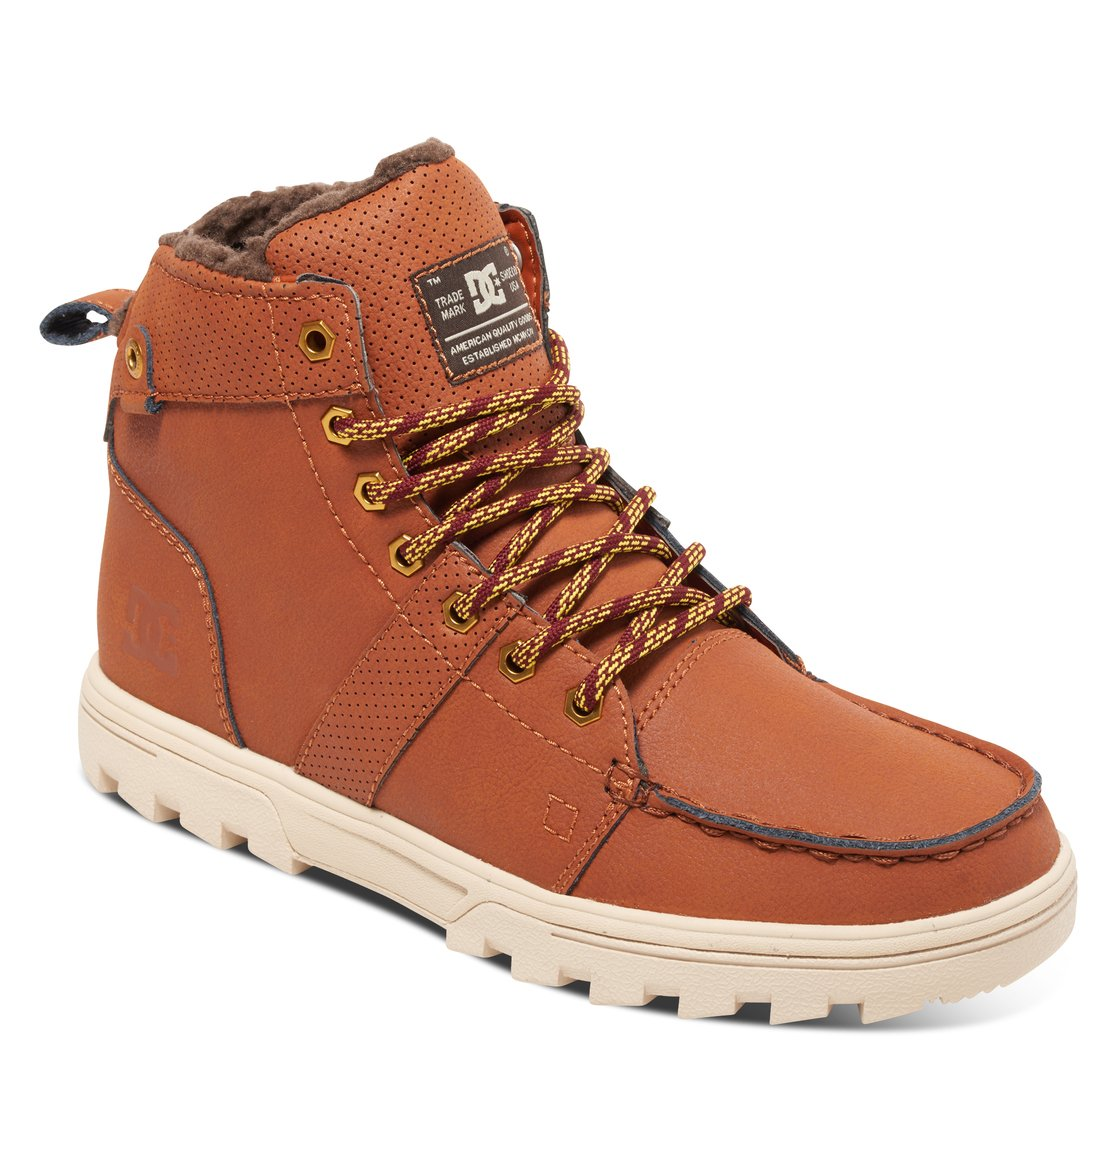 Men's Woodland Boots 303241 | DC Shoes